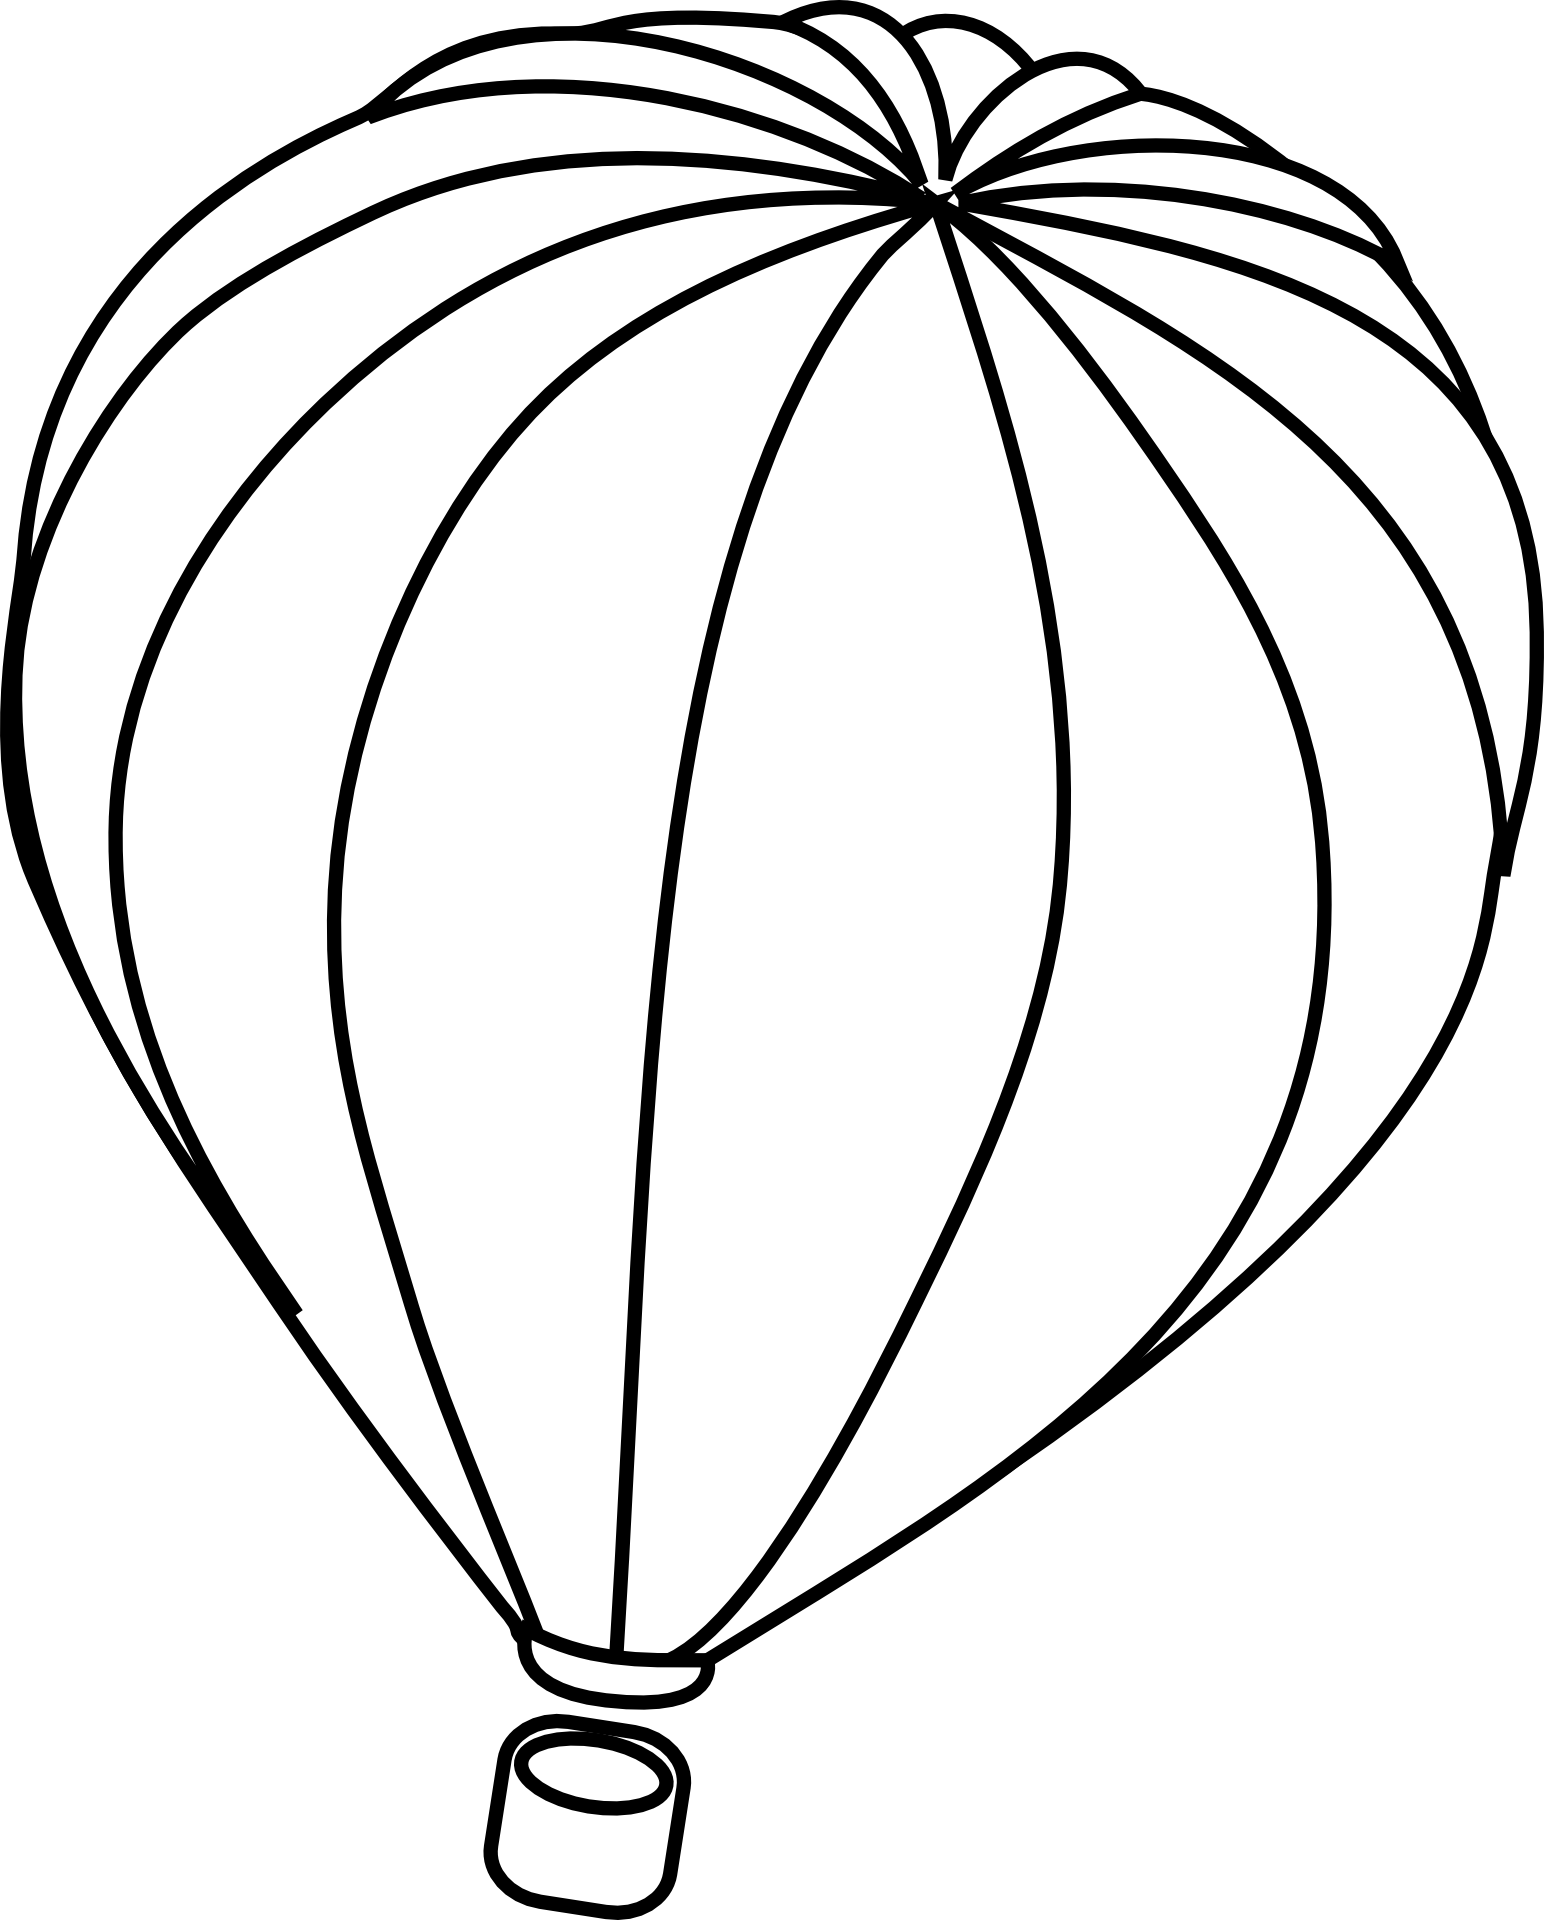 Hot Air Balloon Flying Outline Sketch Free Image